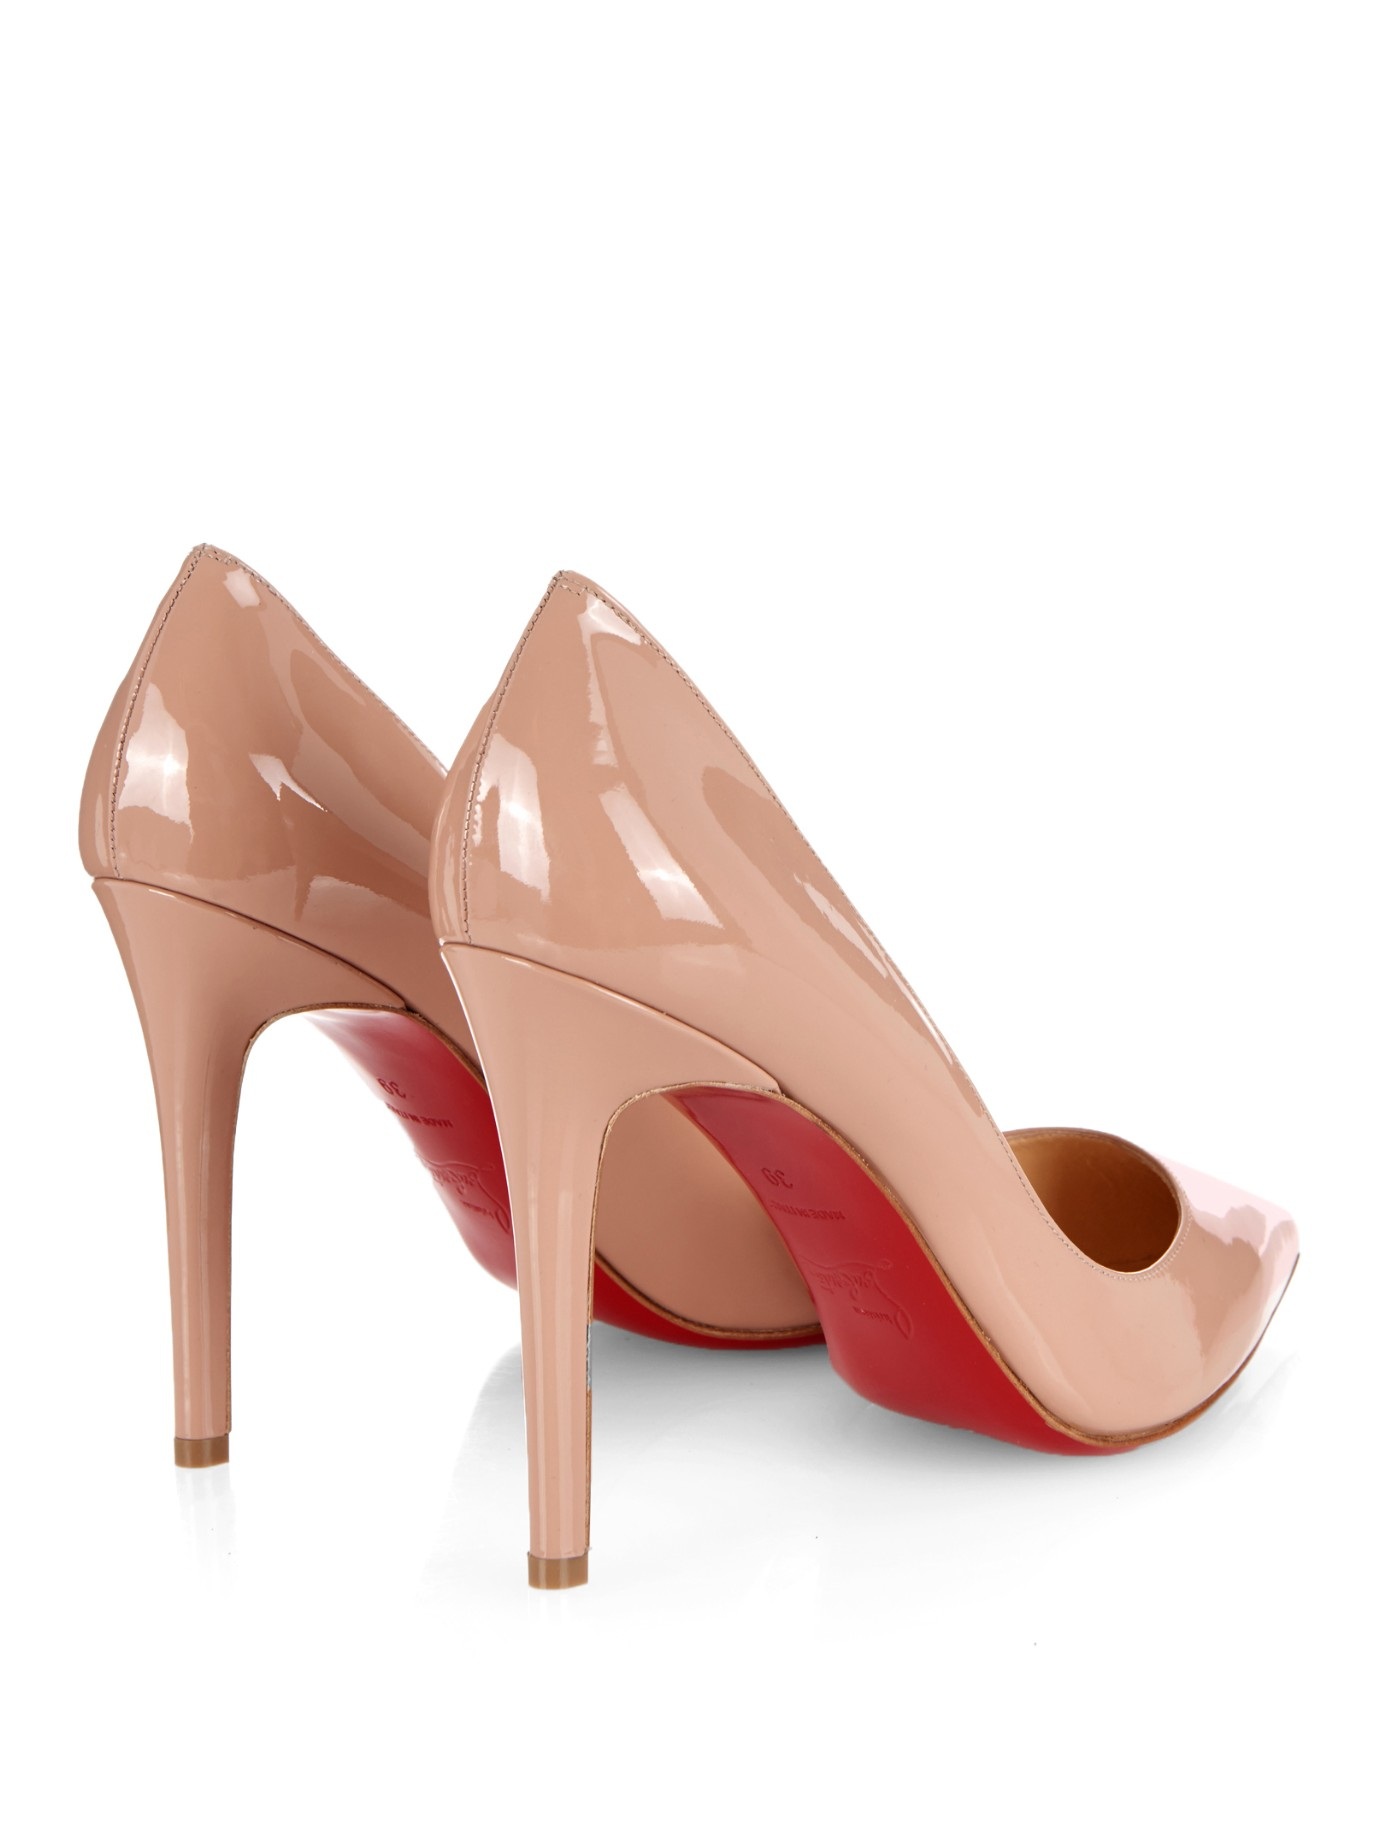 buy popular 7d240 7b4d5 Christian Louboutin Natural Pigalle 100Mm Patent-Leather Pumps